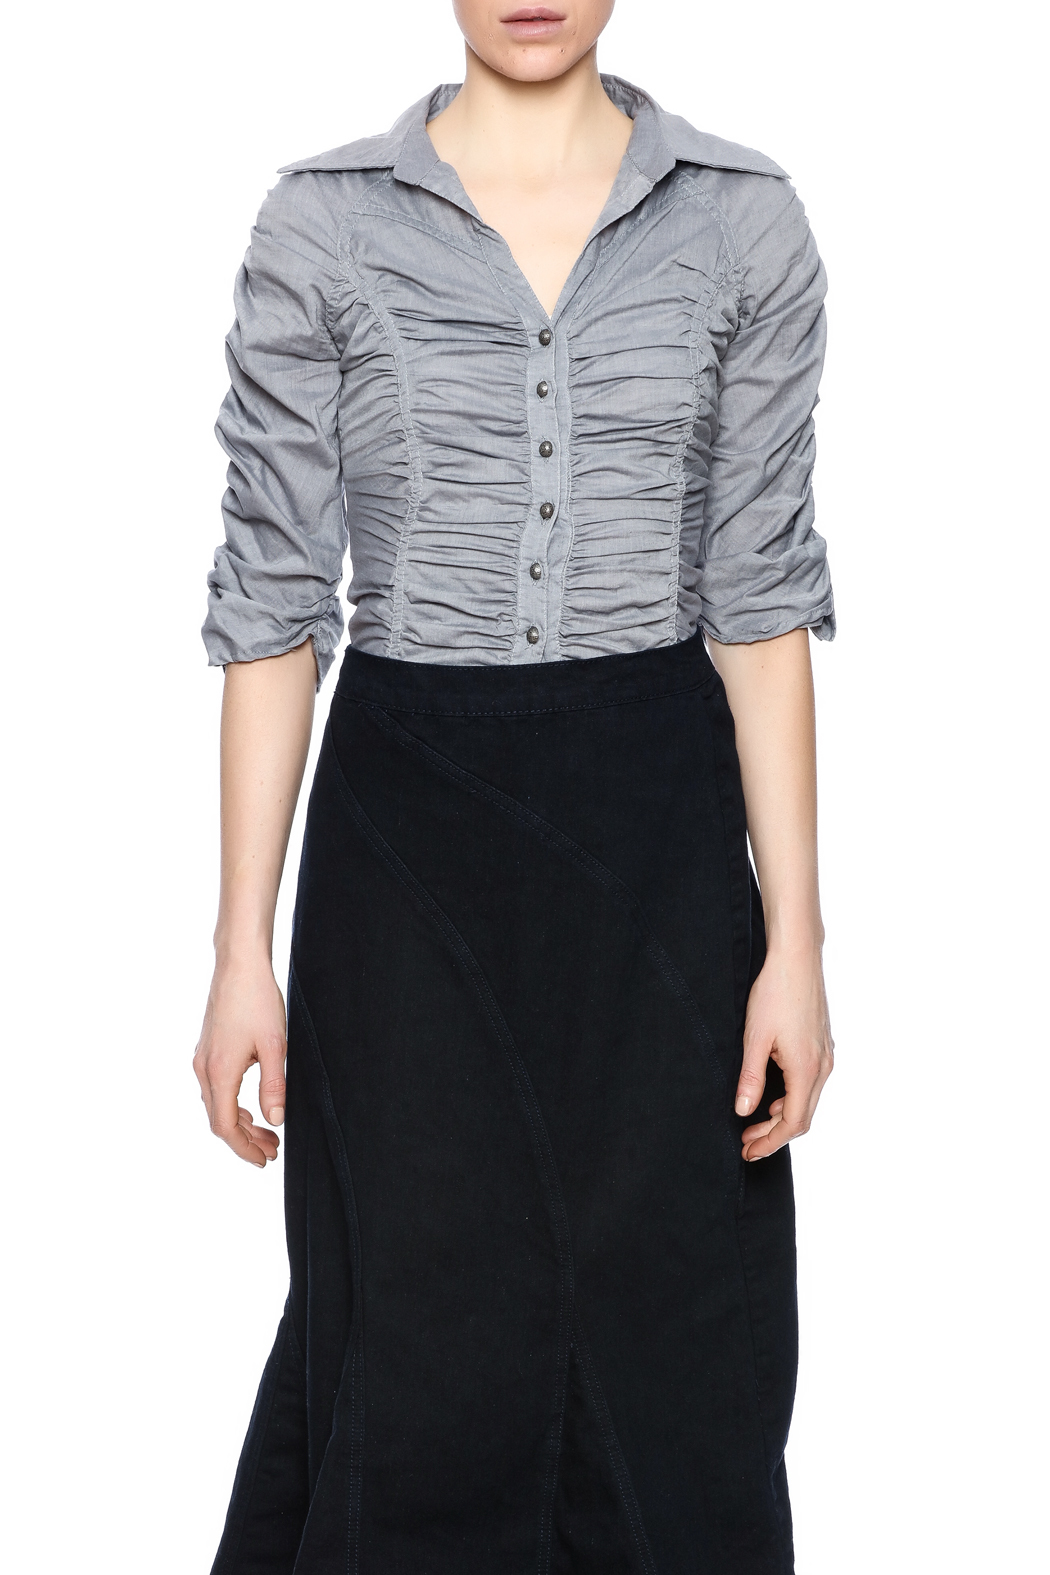 Roma Premium Collection Shirred Button Blouse from New Jersey by Covered Girl Clothing u2014 Shoptiques